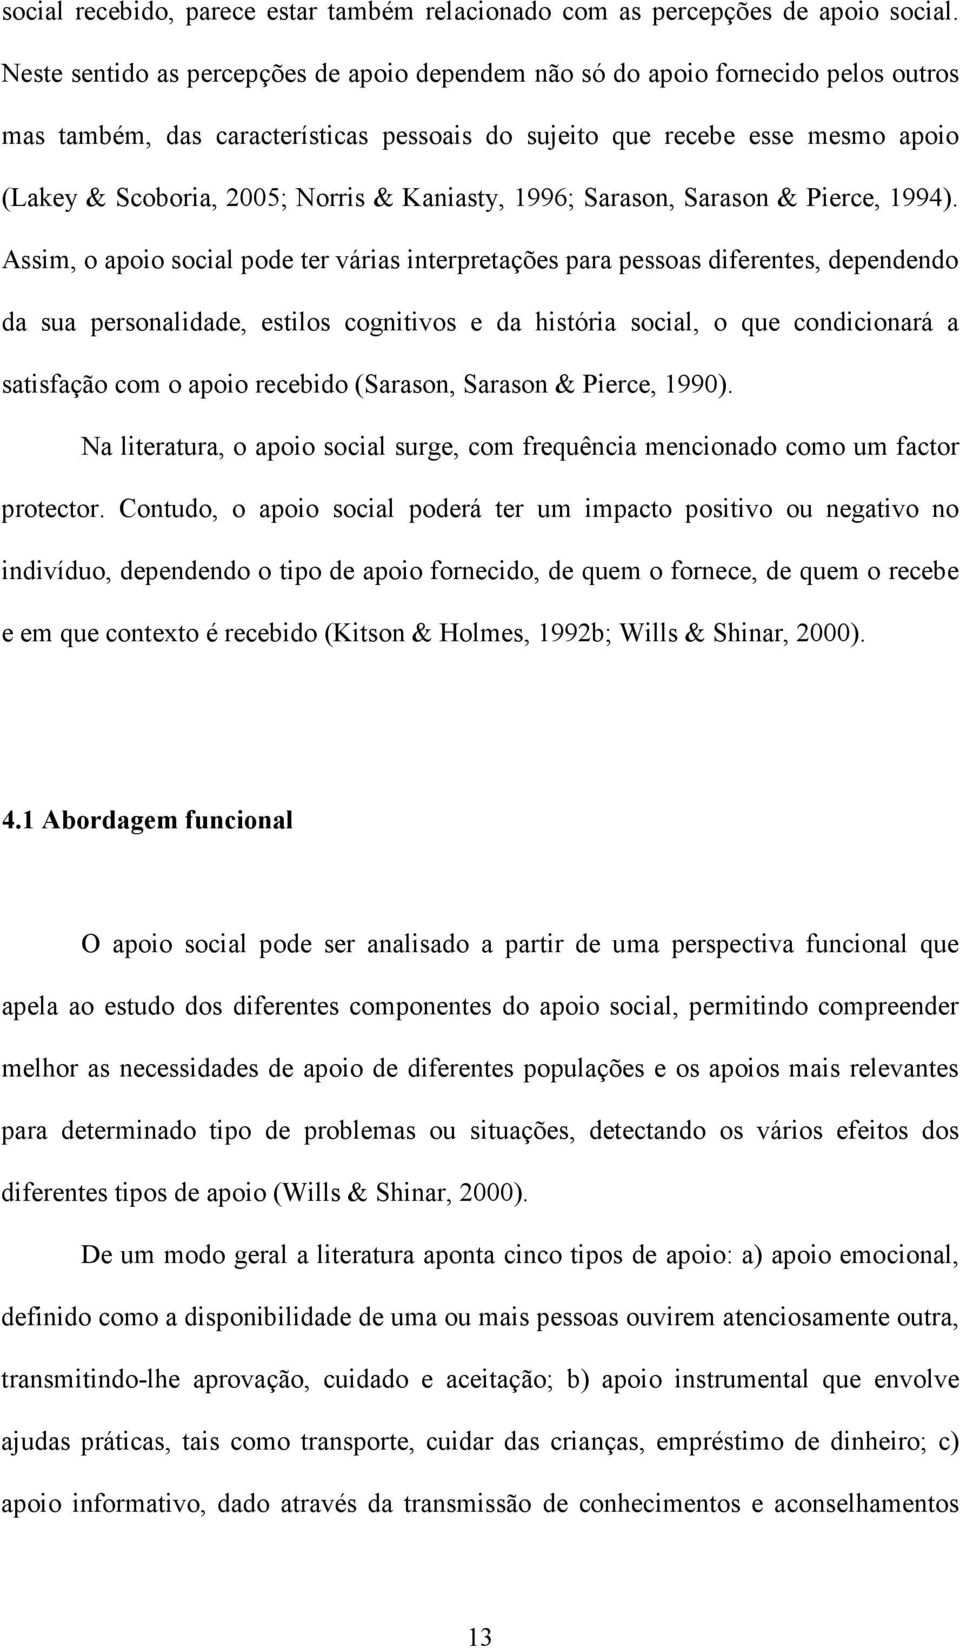 Kaniasty, 1996; Sarason, Sarason & Pierce, 1994).